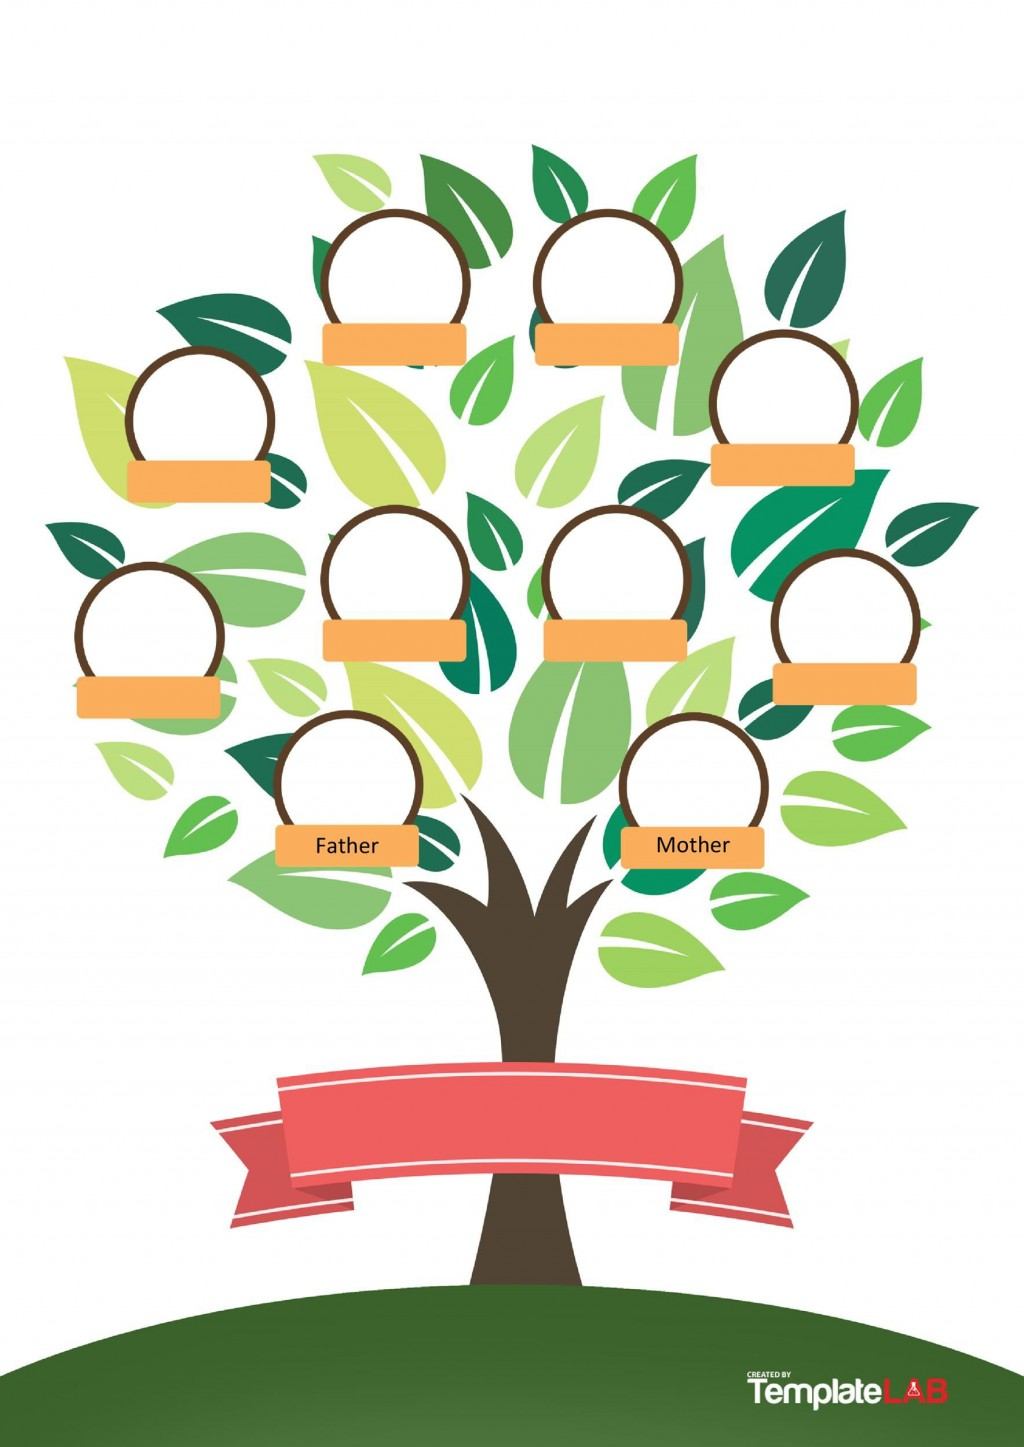 004 Magnificent Family Tree Template Online Highest Clarity  Free Maker ExcelLarge